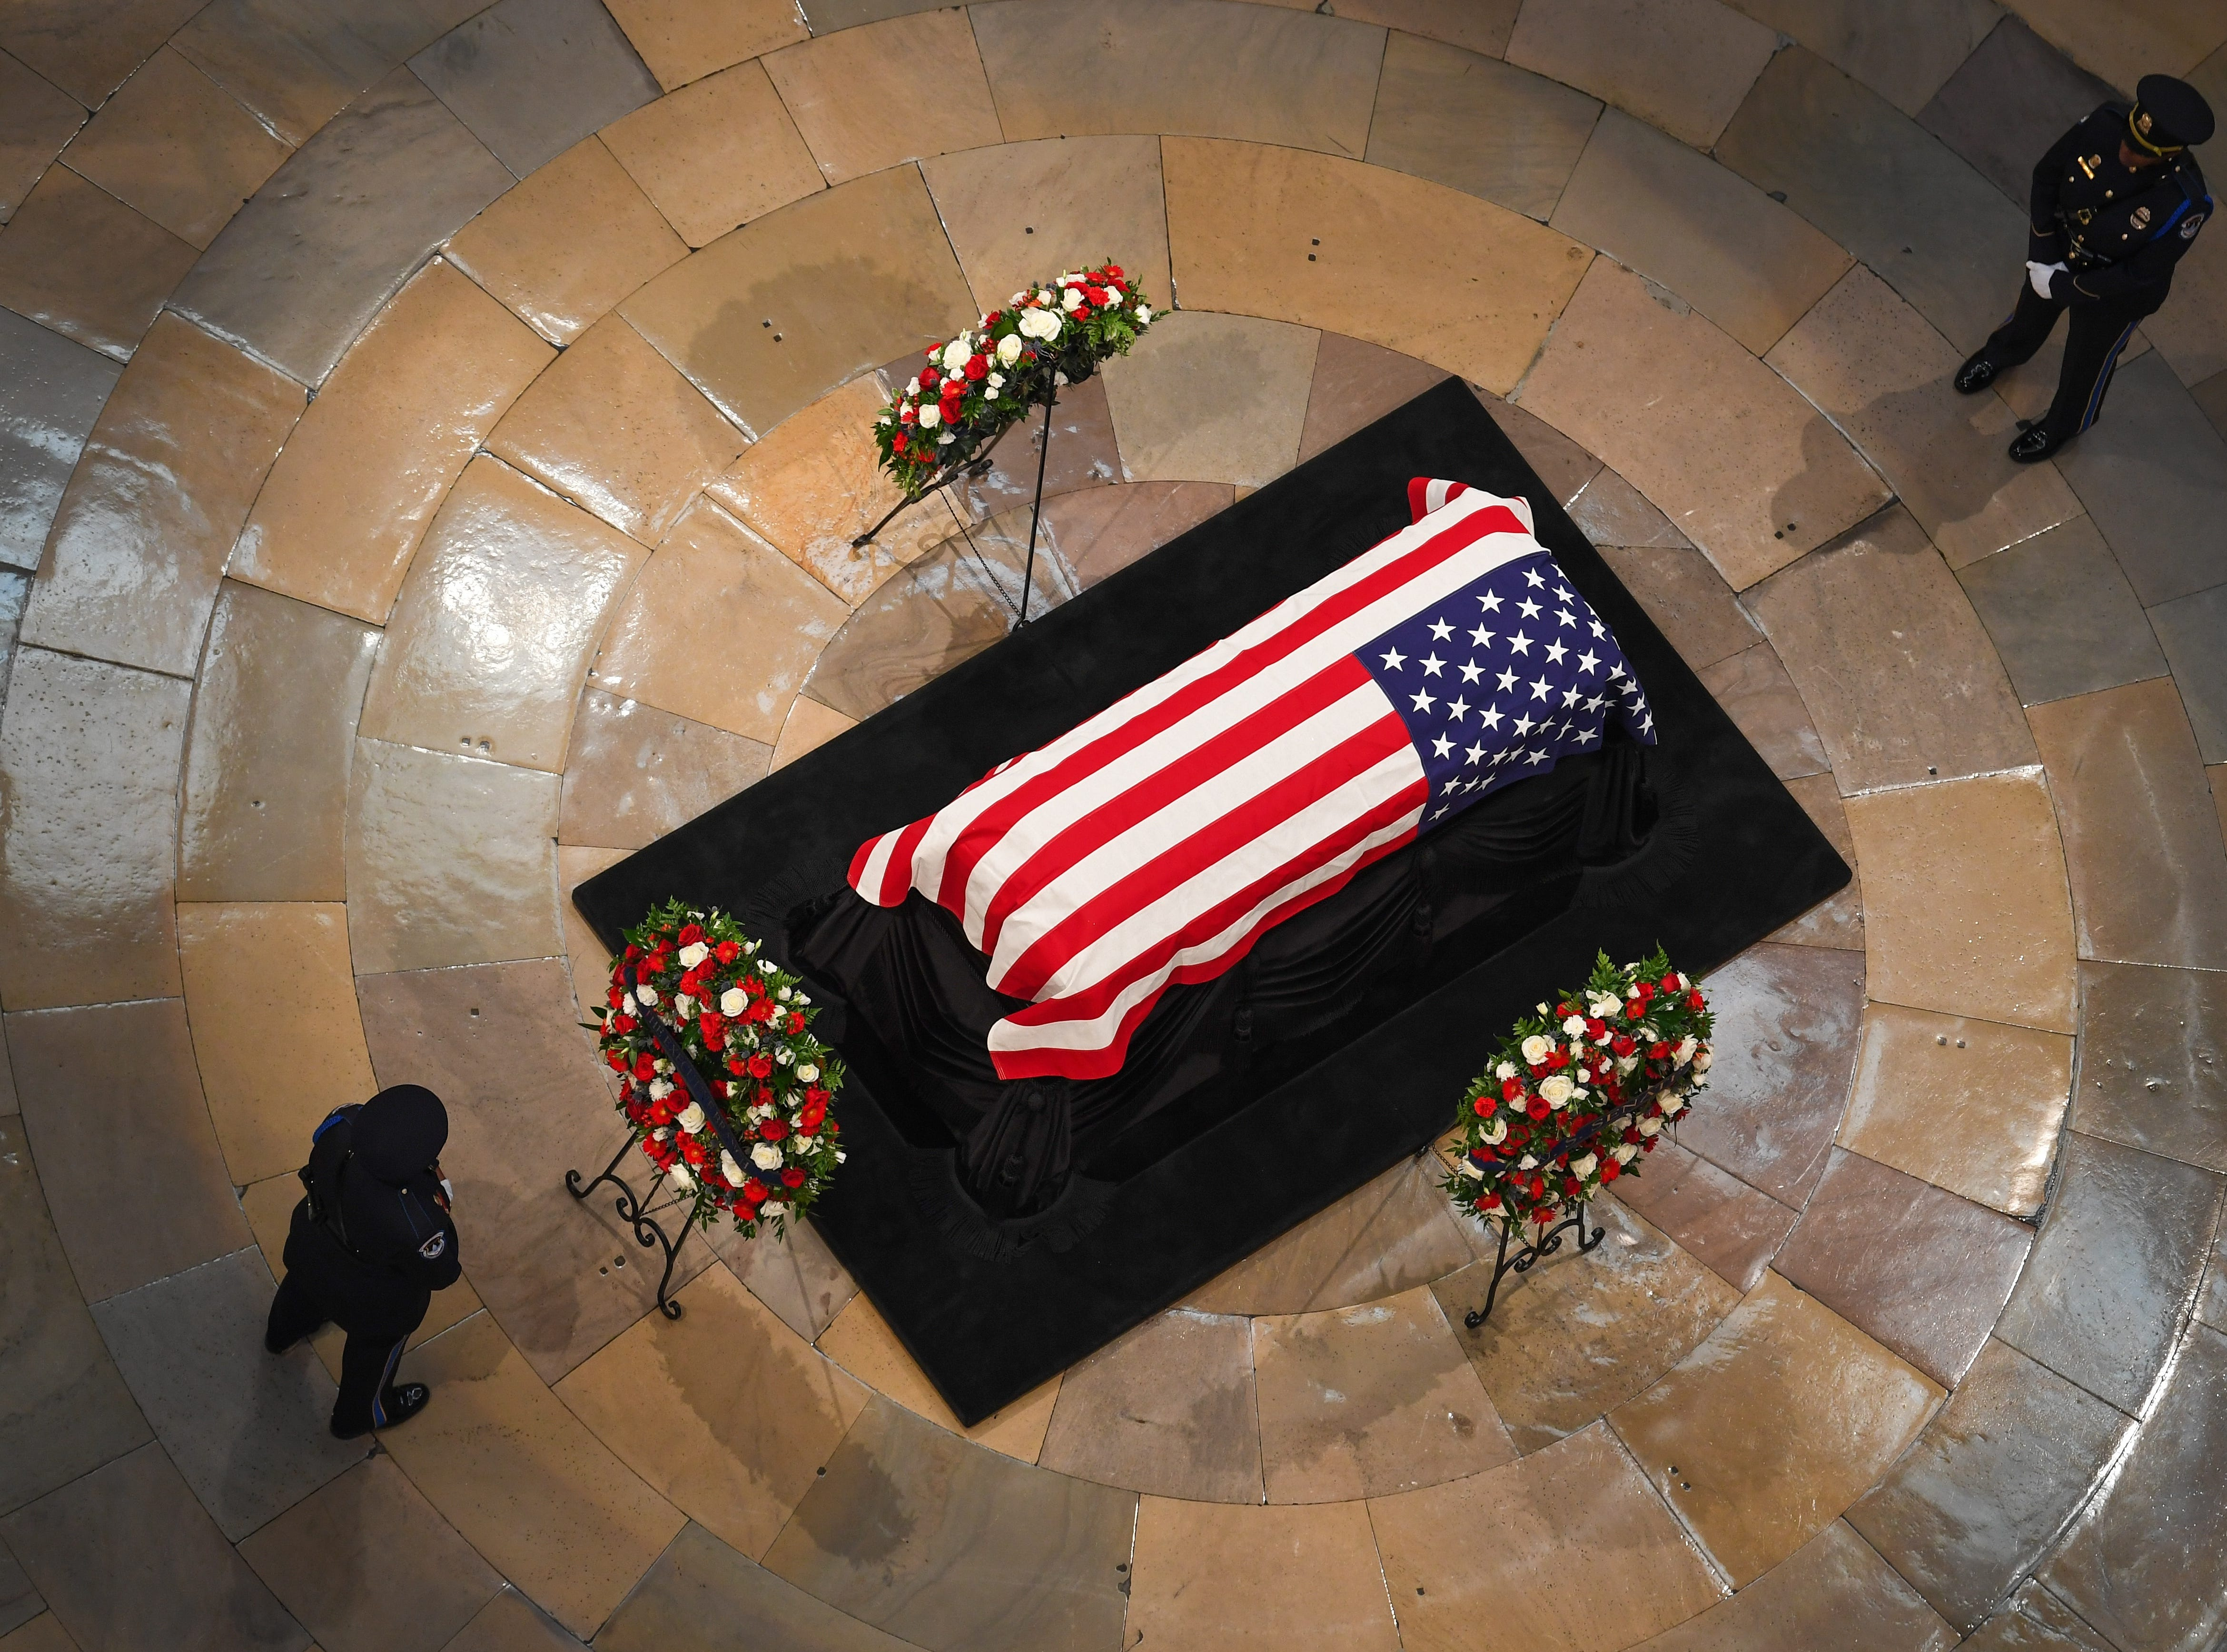 8/31/18 1:57:53 PM -- Washington, DC, U.S.A  -- The body of John McCain lying in state at the U.S. Capitol in Washington on Aug. 31, 2018 in Washington. Sen. McCain died on Aug. 25. --    Photo by Jack Gruber, USA TODAY Staff